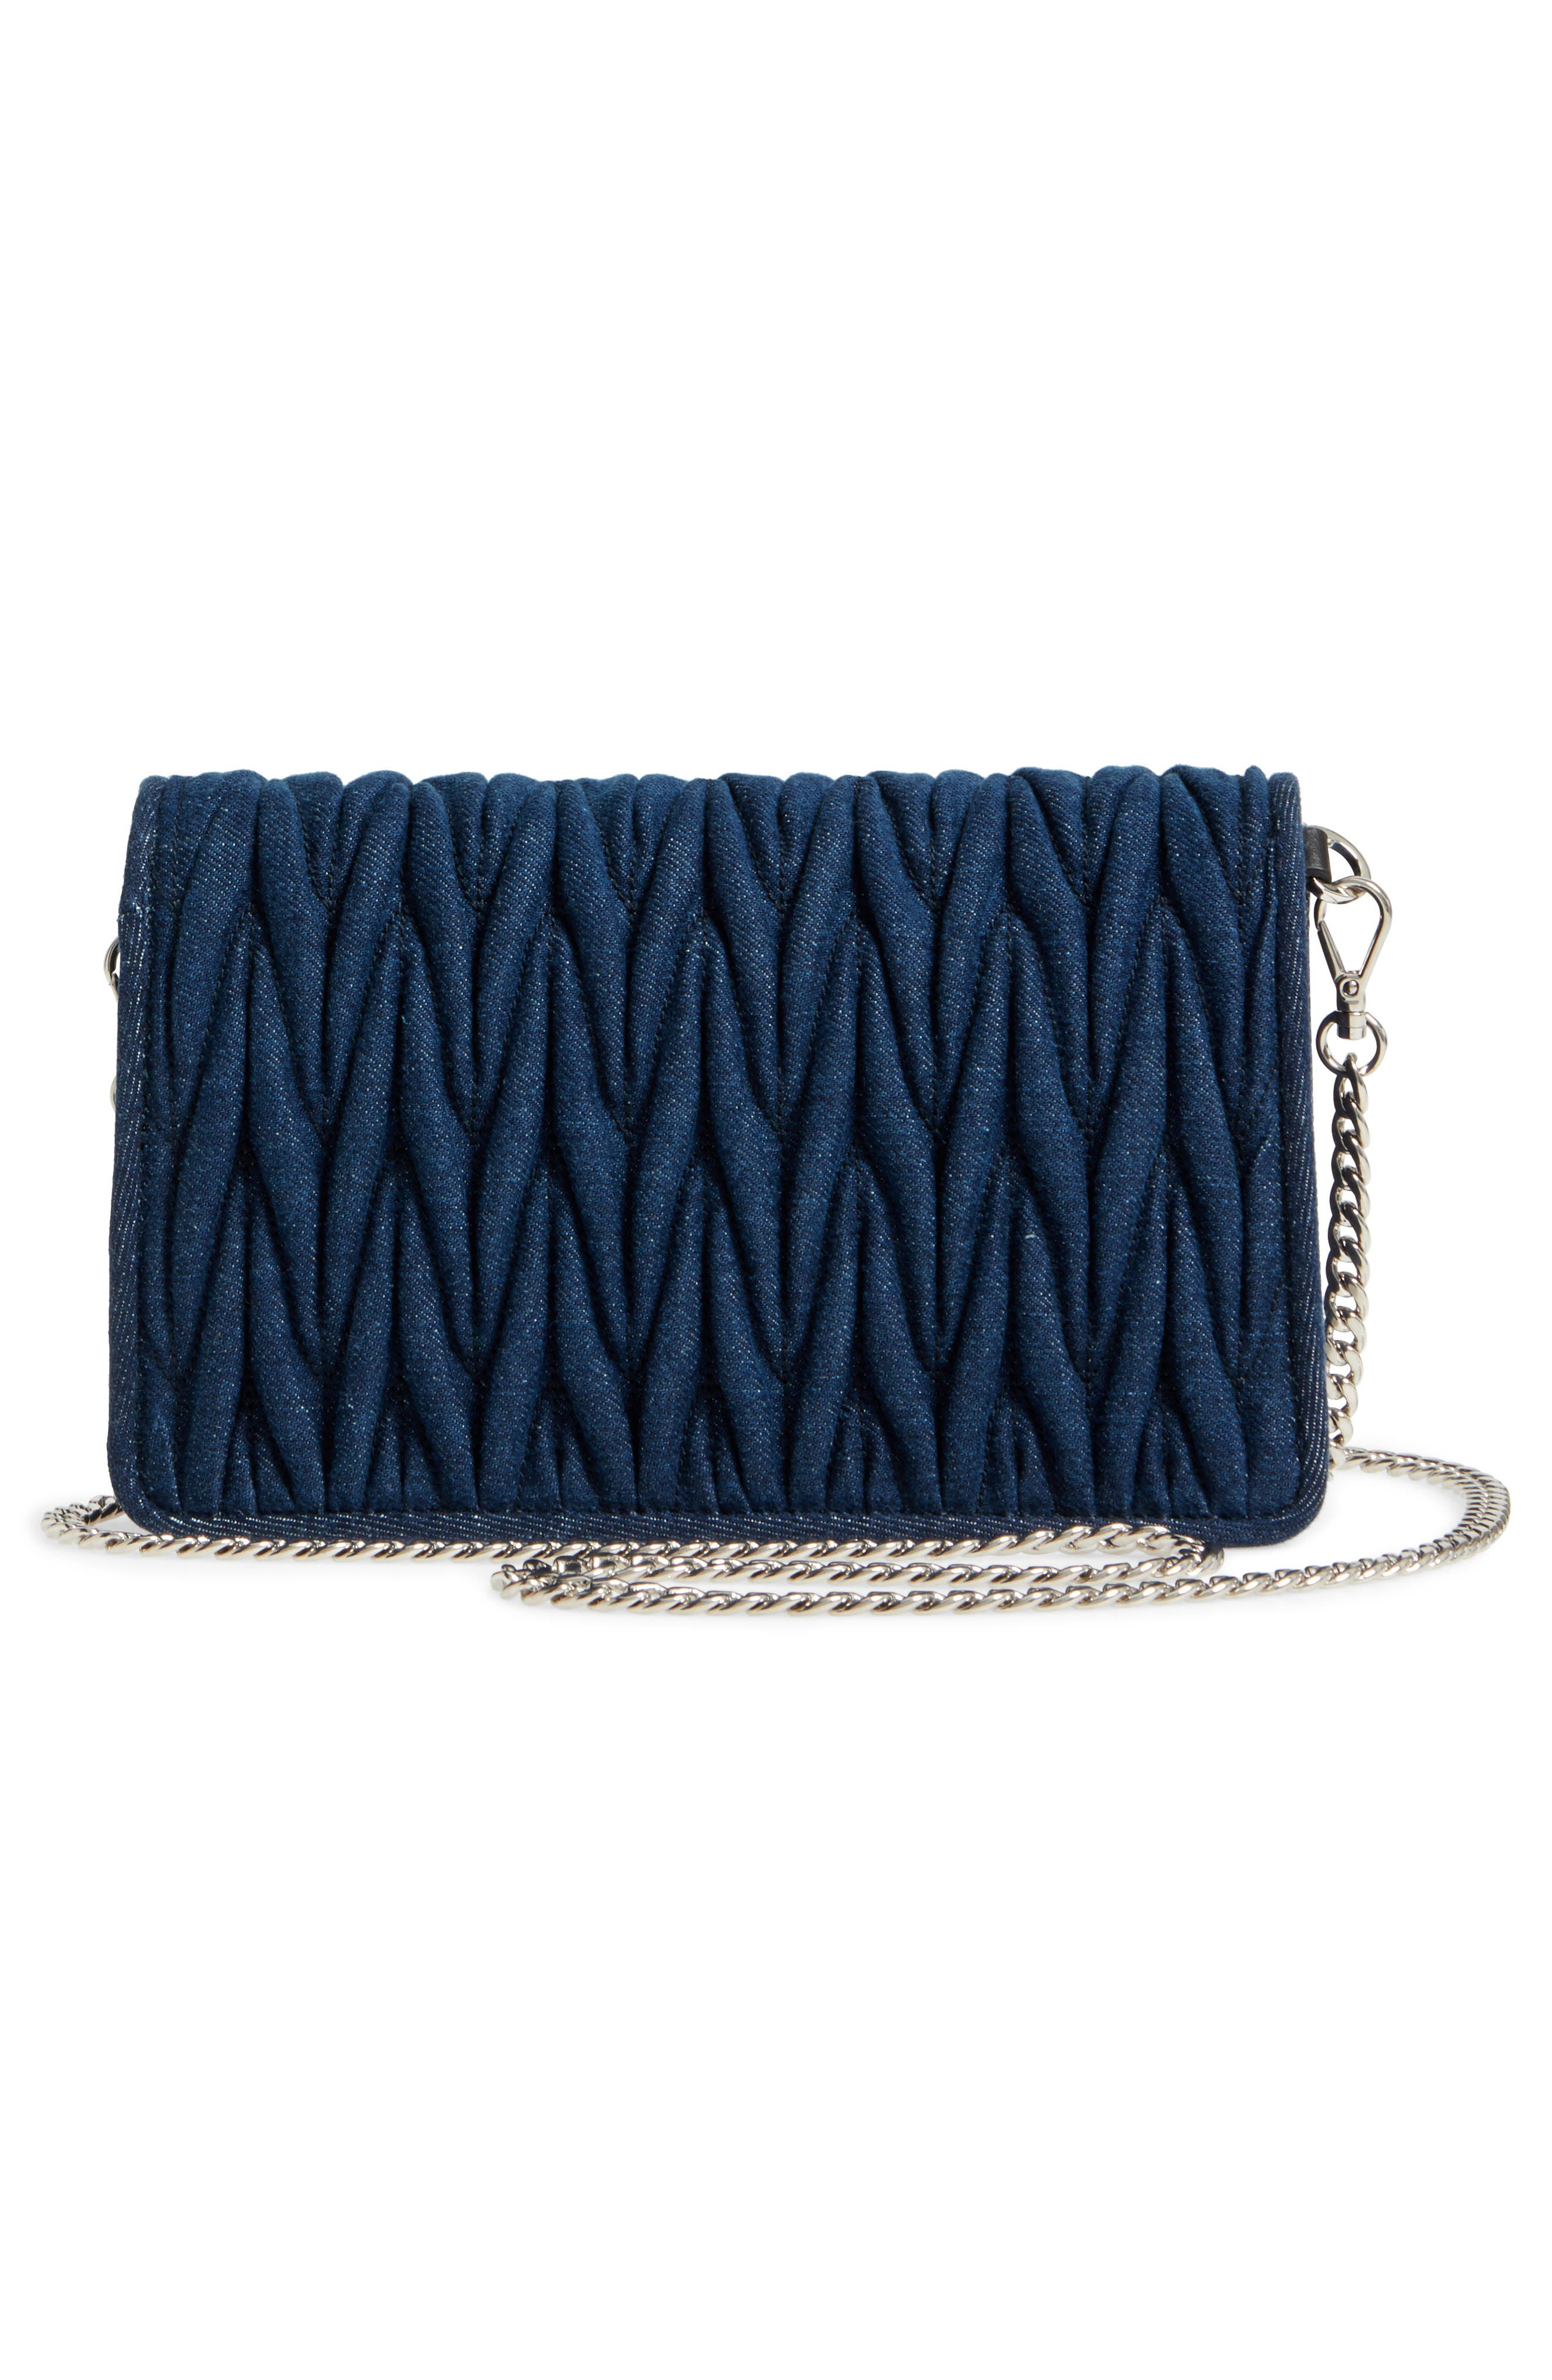 Matelassé Denim Crossbody Clutch,                             Alternate thumbnail 2, color,                             Bleu